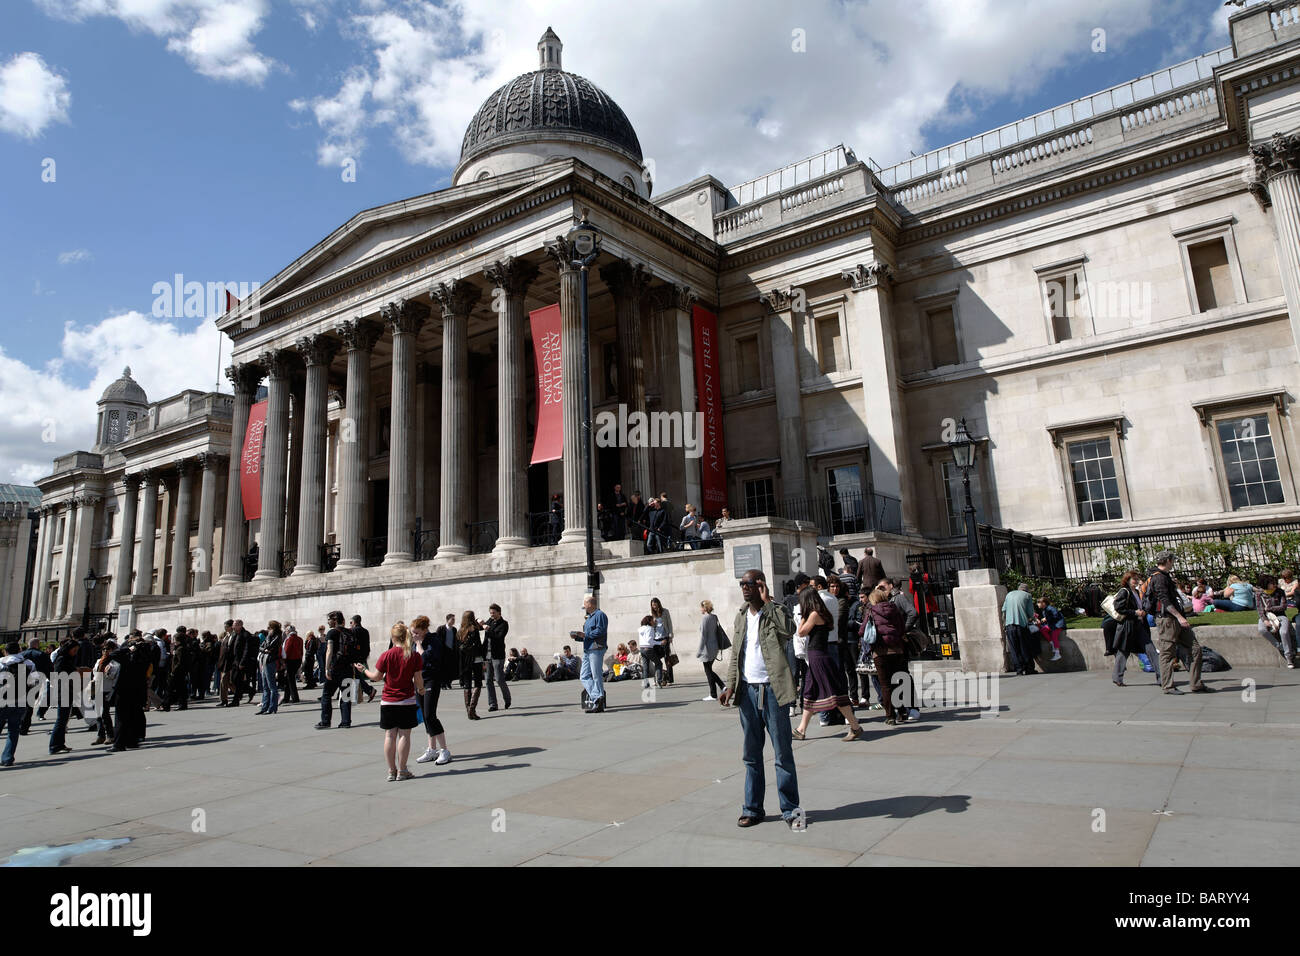 The National Gallery, London, England Stock Photo